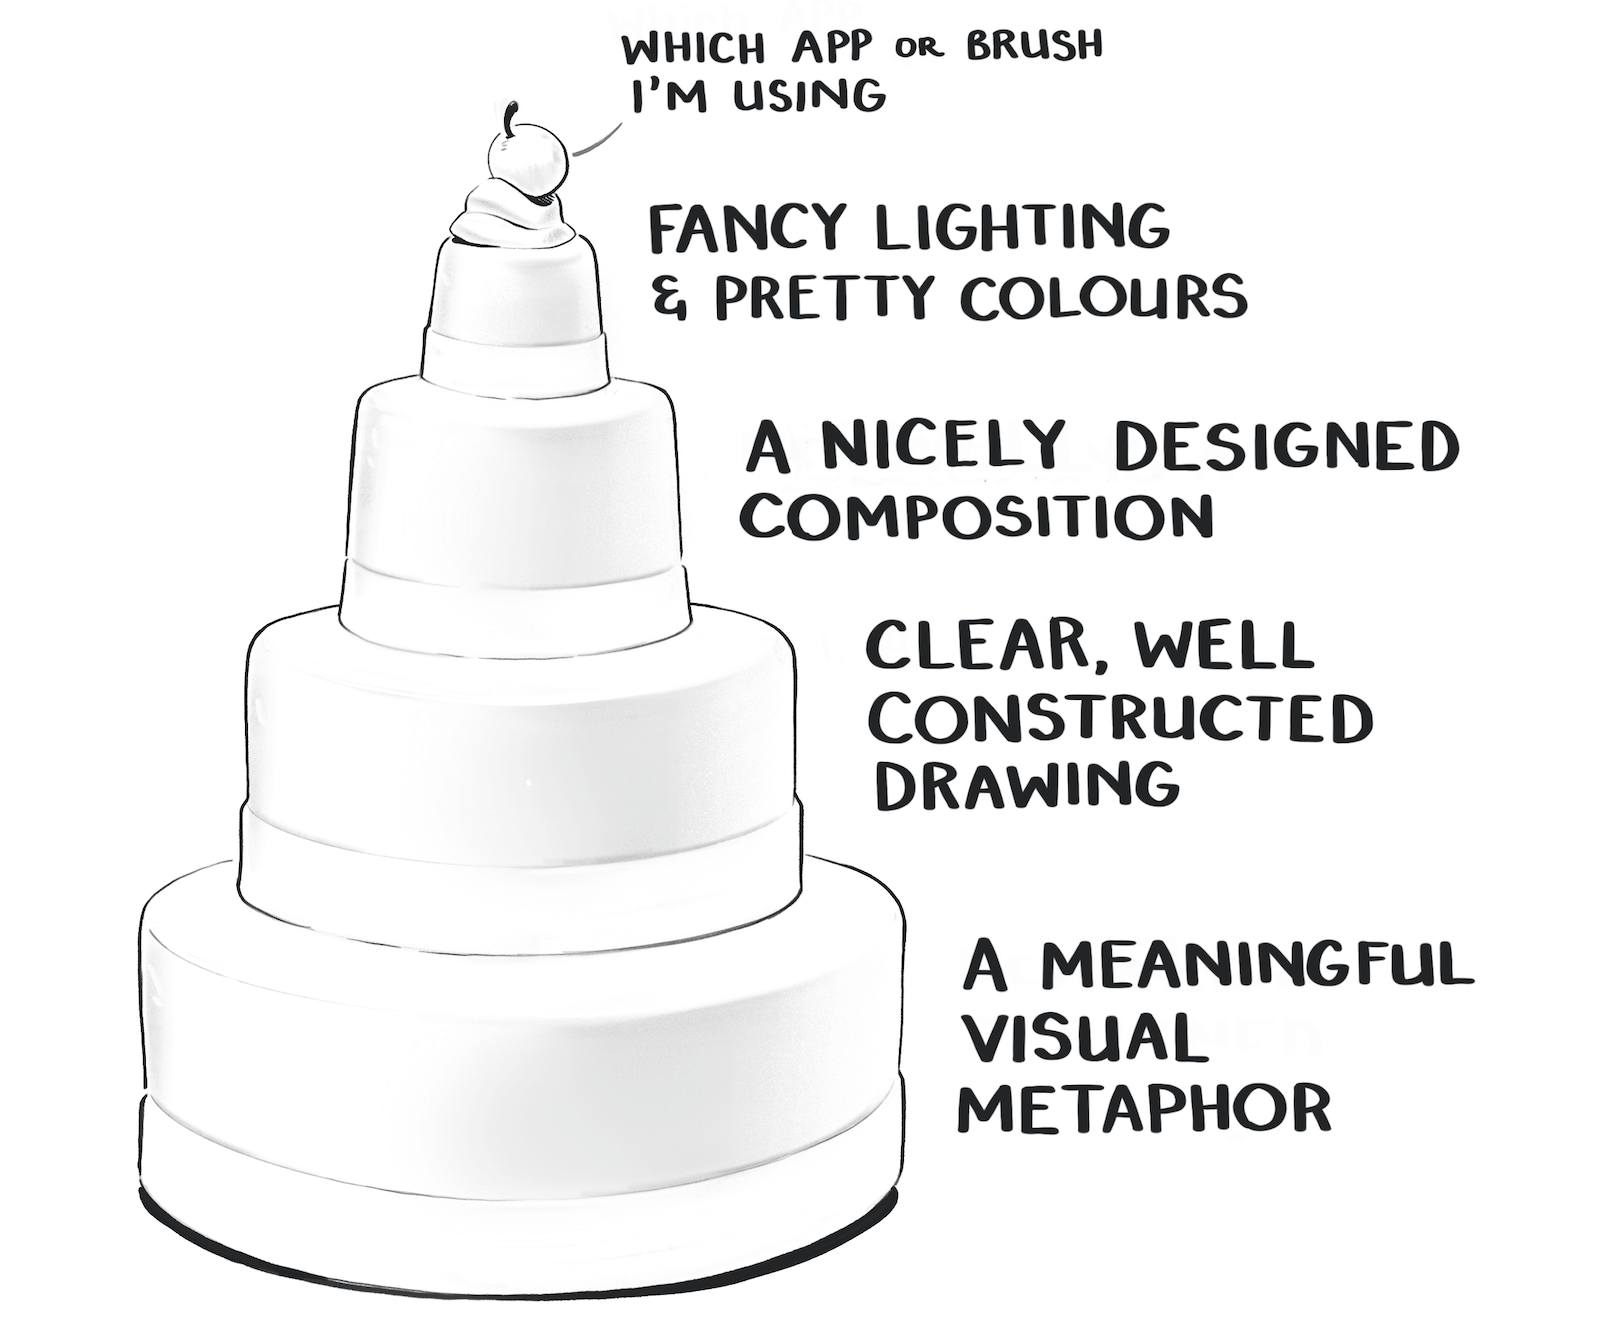 Illustration of a layered cake with four tiers. The bottom is meaningful visual metaphor, next is clear, well constructed drawing, third is a nicely designed composition, and the top is fancy lighting and pretty colours. On top of the cake is cream and a cherry representing whichever app or brush I'm using